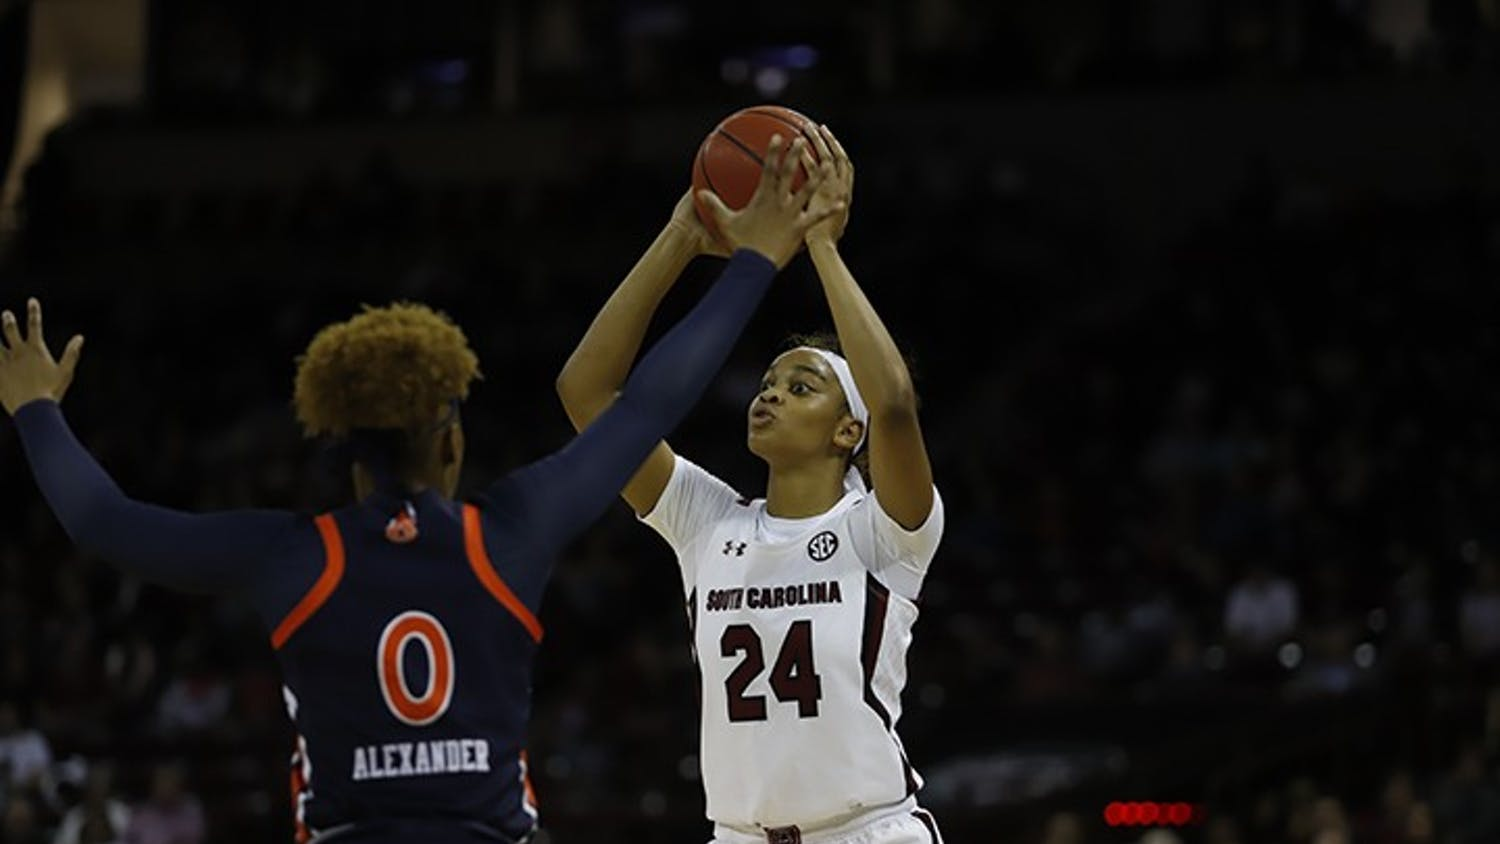 Senior guard Lele Grissett looks for a teammate to pass the ball to during a game against Auburn. During her time at USC, Grissett had a total of 635 points, 63 blocks and 93 assists.